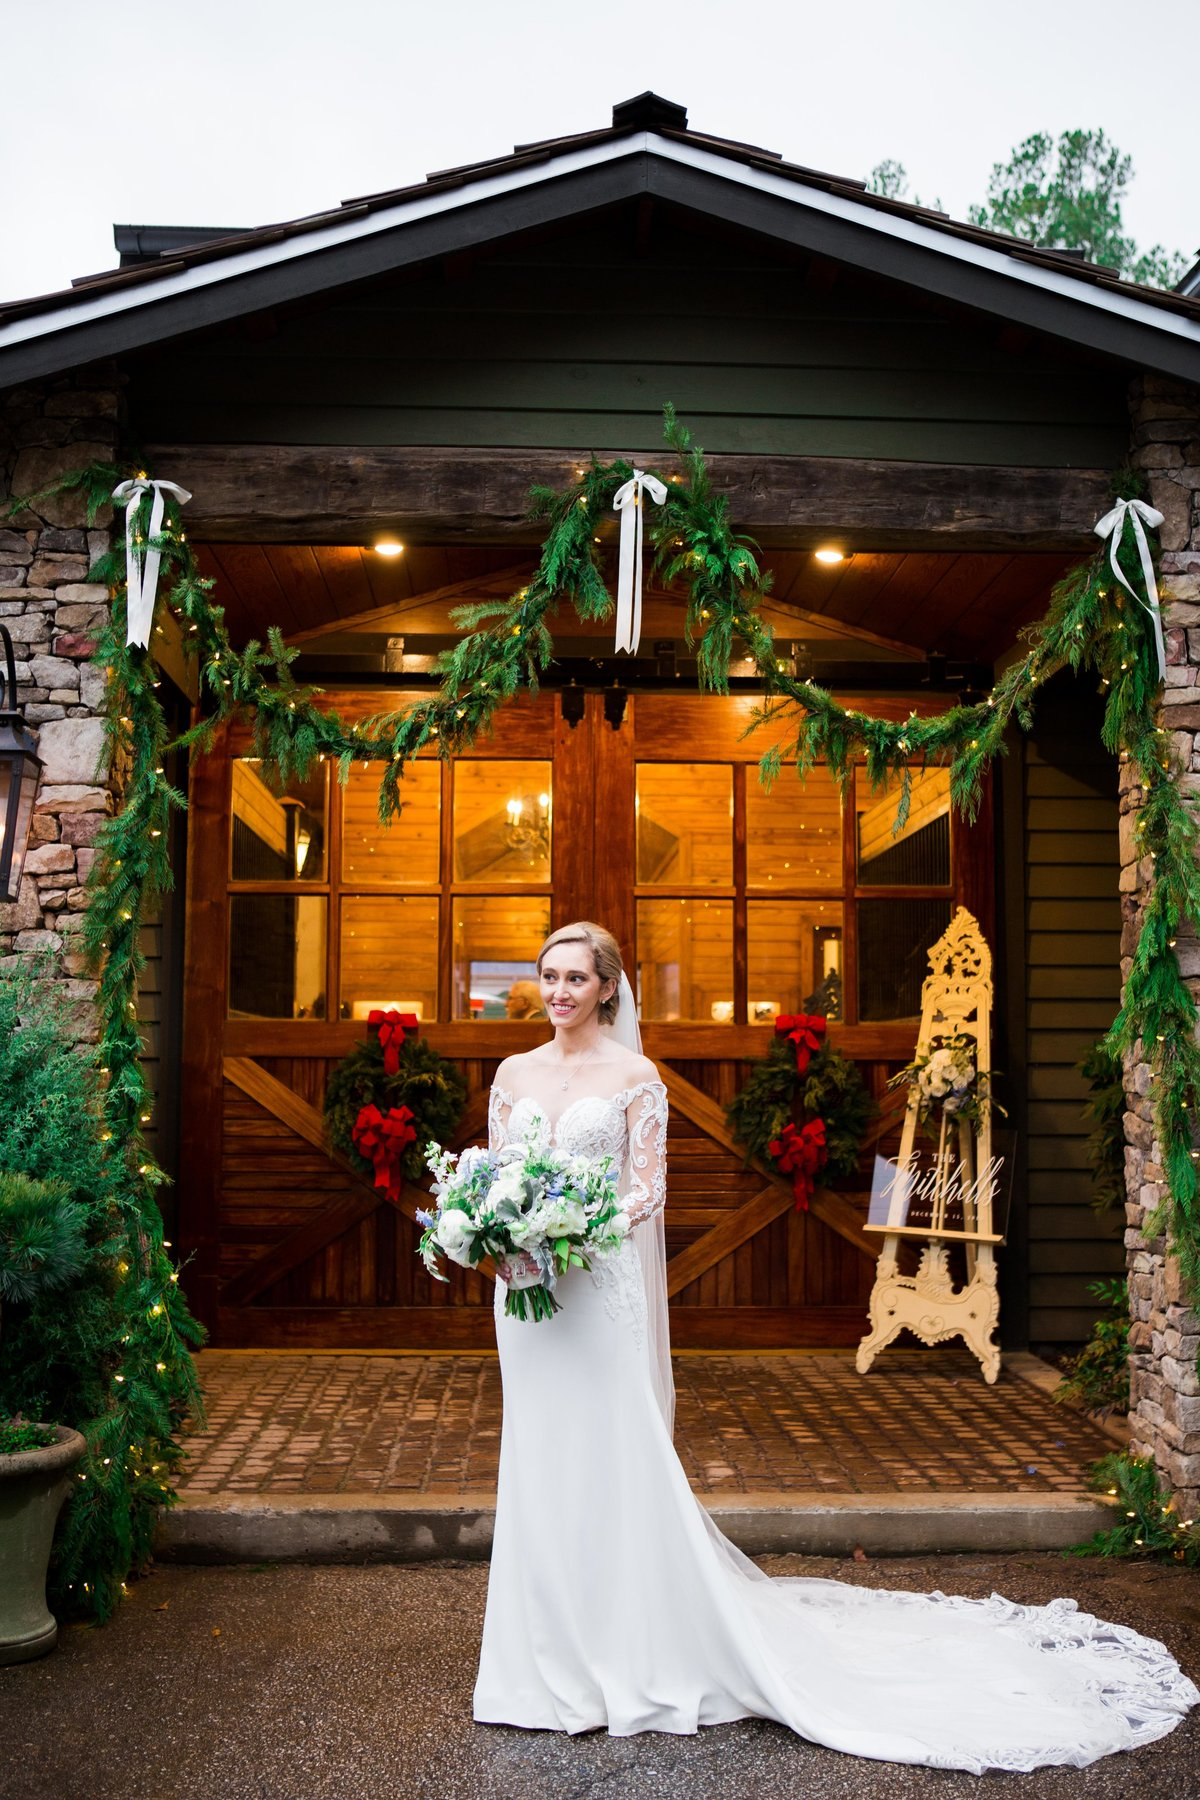 Windwood_Equestrian_Outdoor_Farm_Wedding_VenueArden_Photography206